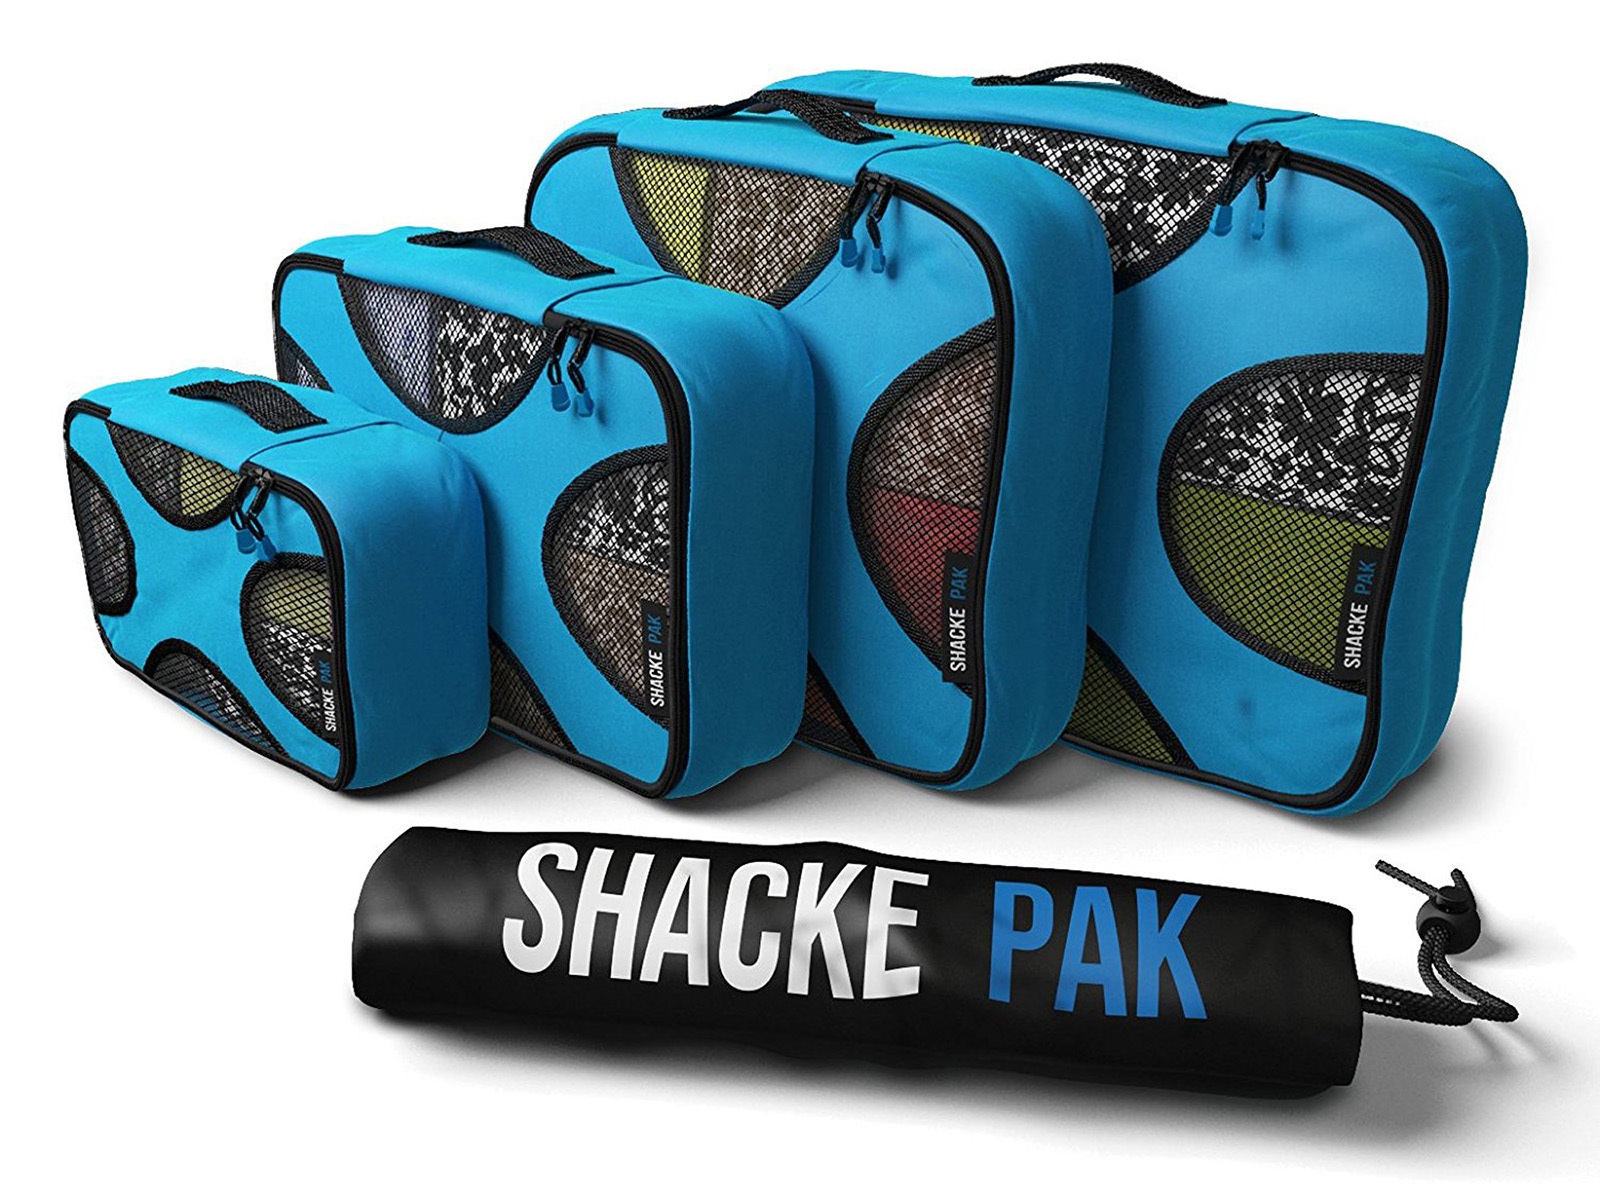 Shacke-Pak-packing.jpg?mtime=20190415100638#asset:105512